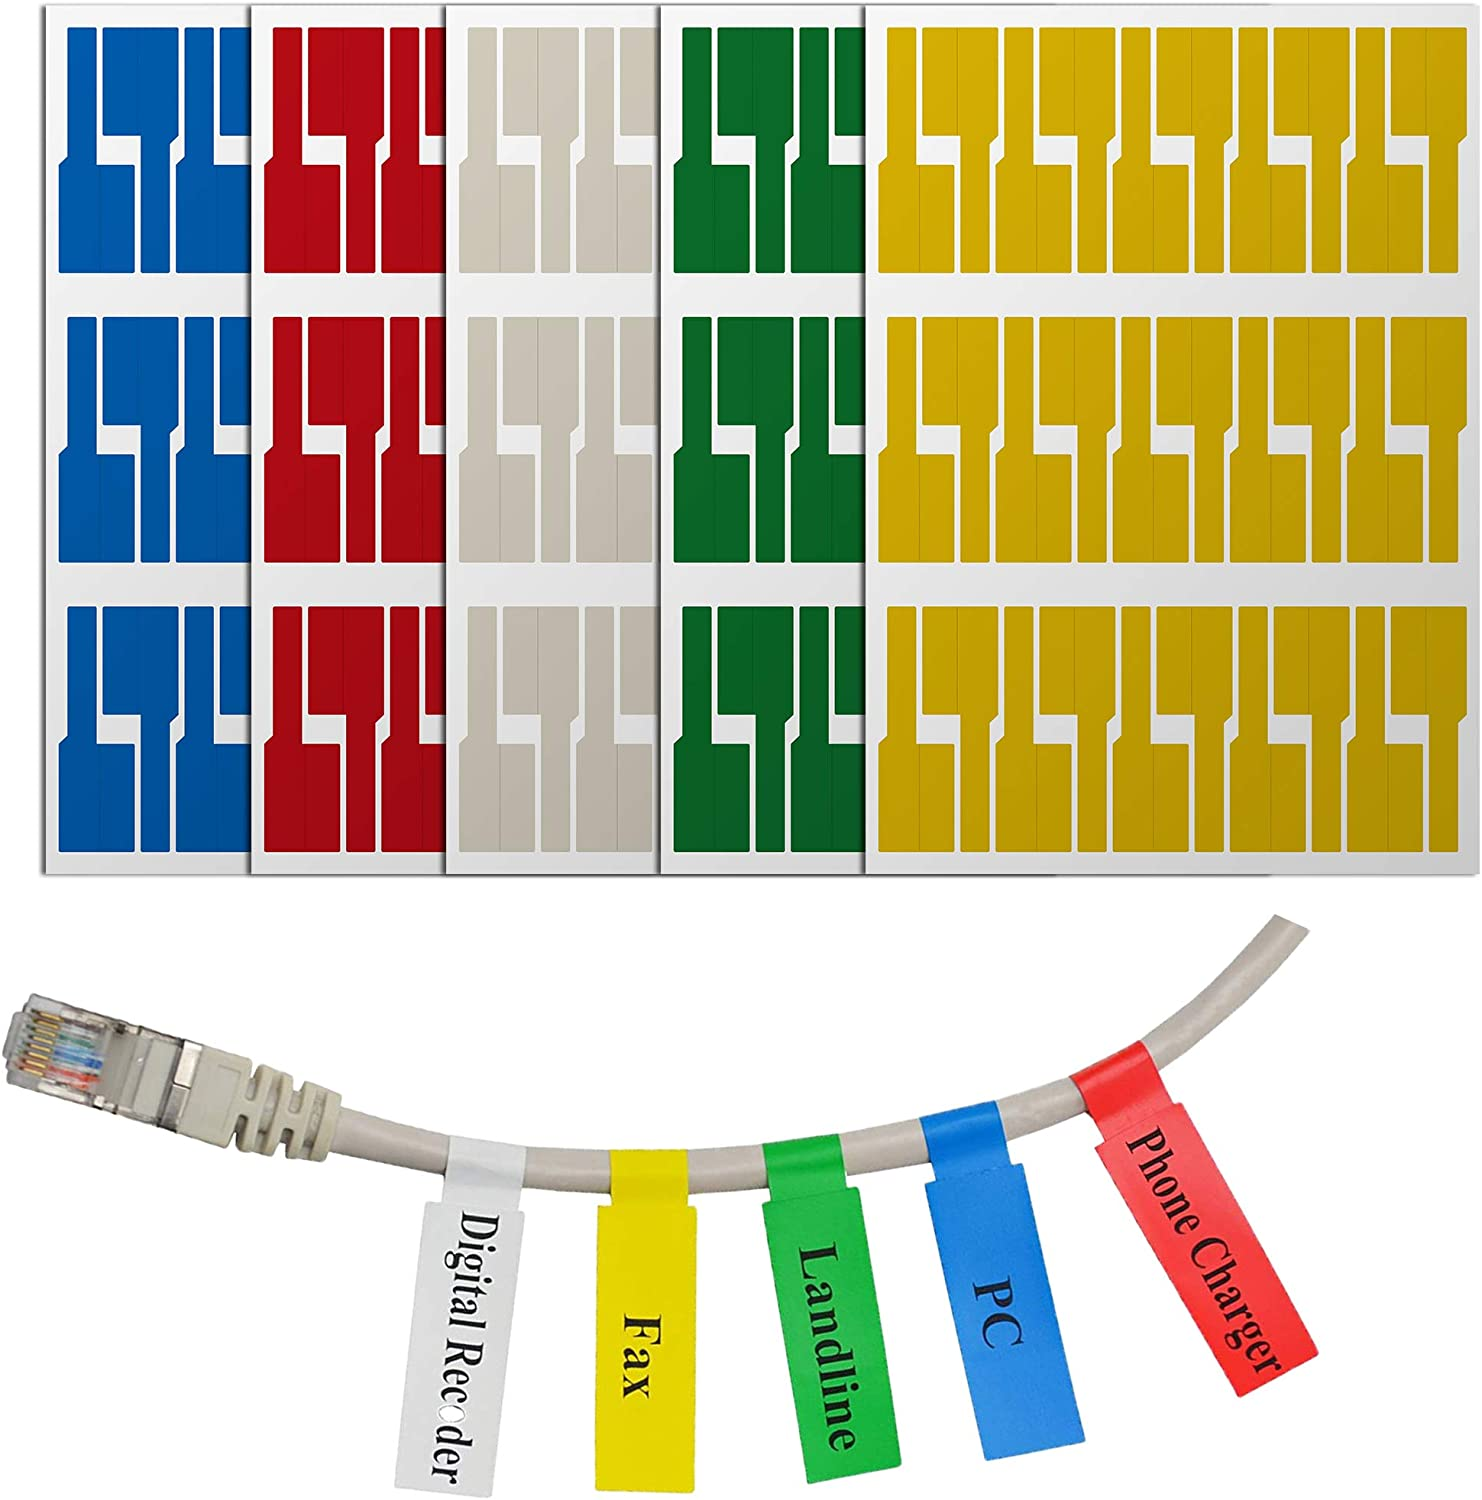 300 Labels Colorful Waterproof Cord Labels,Self Adhesive Cable Labels Printable and Handwriting Cable Organize 300 Pcs Tear Resistant Wire Identification Labels , 10 Assorted Colors 10 Sheets